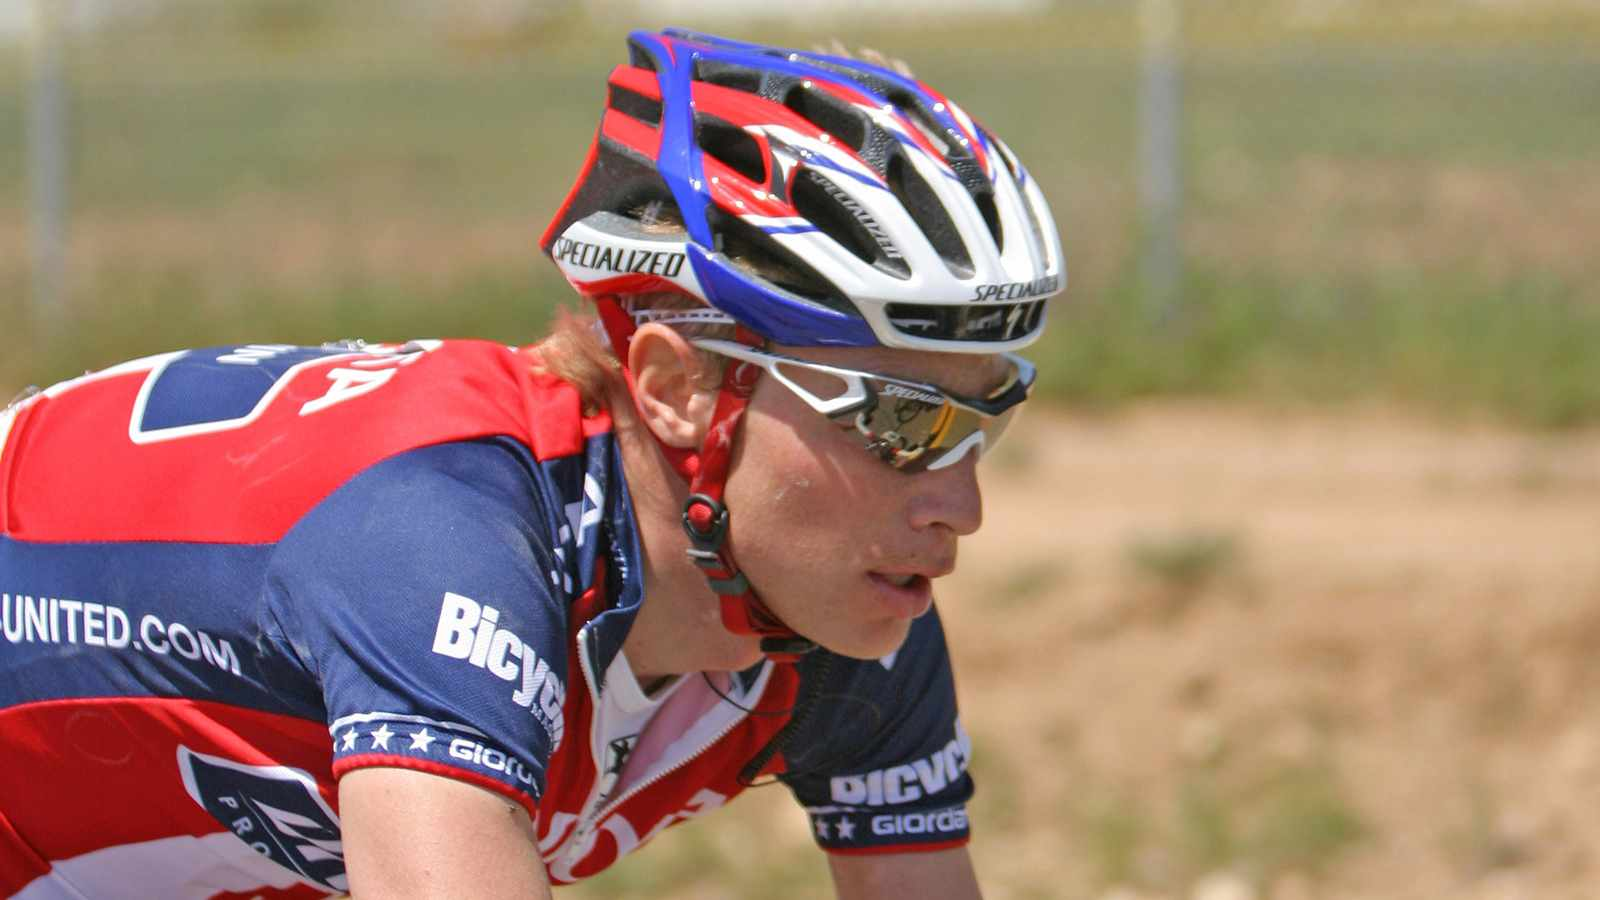 Chris Baldwin is two-time US National Time Trial champion